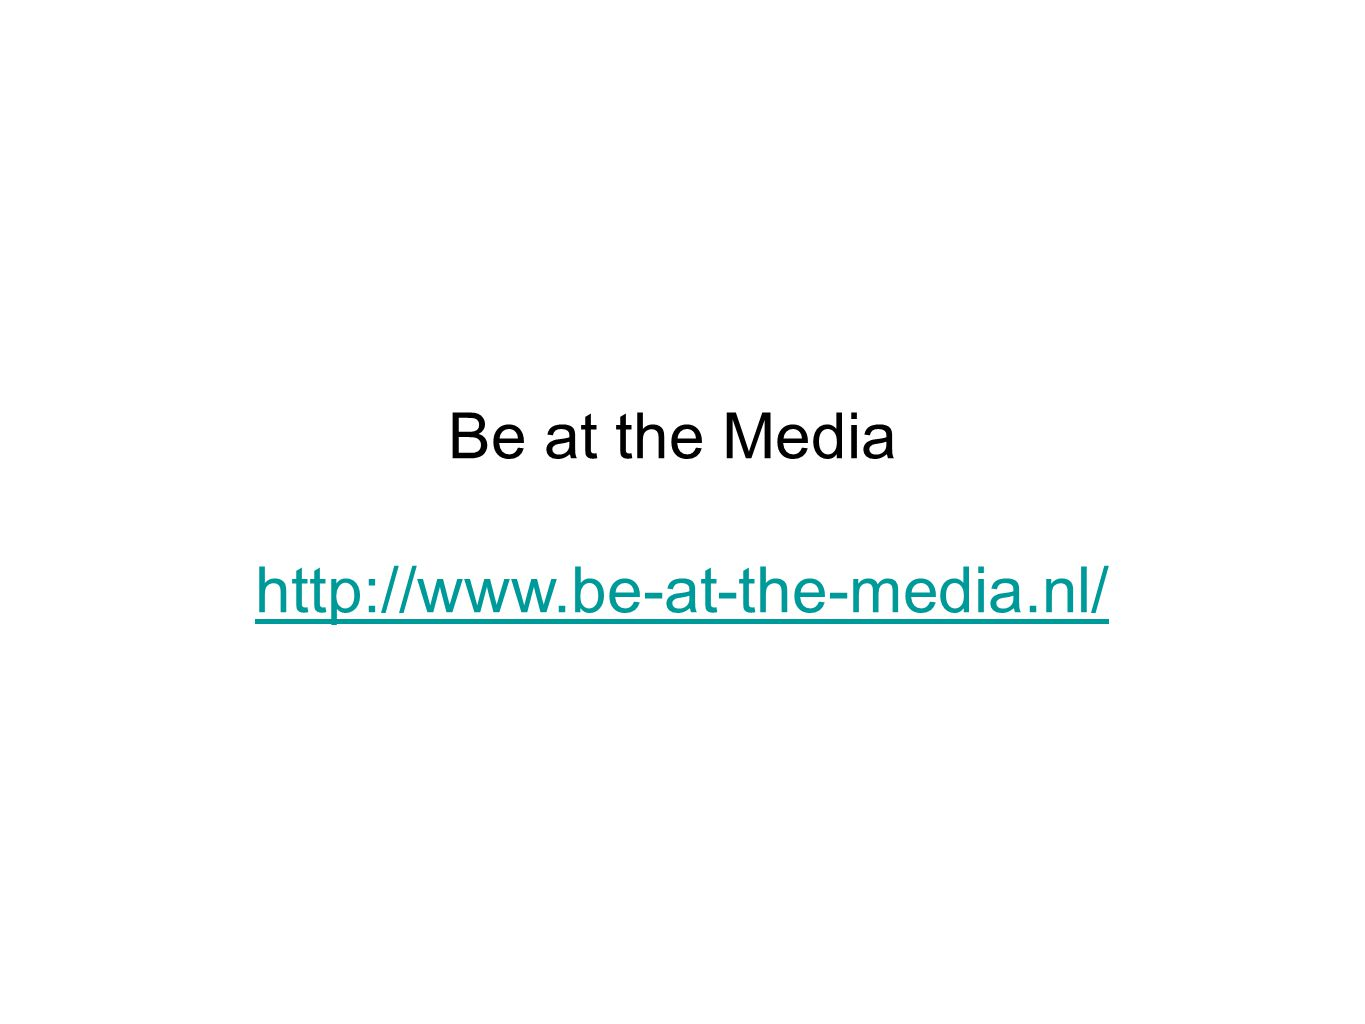 Be at the Media http://www.be-at-the-media.nl/